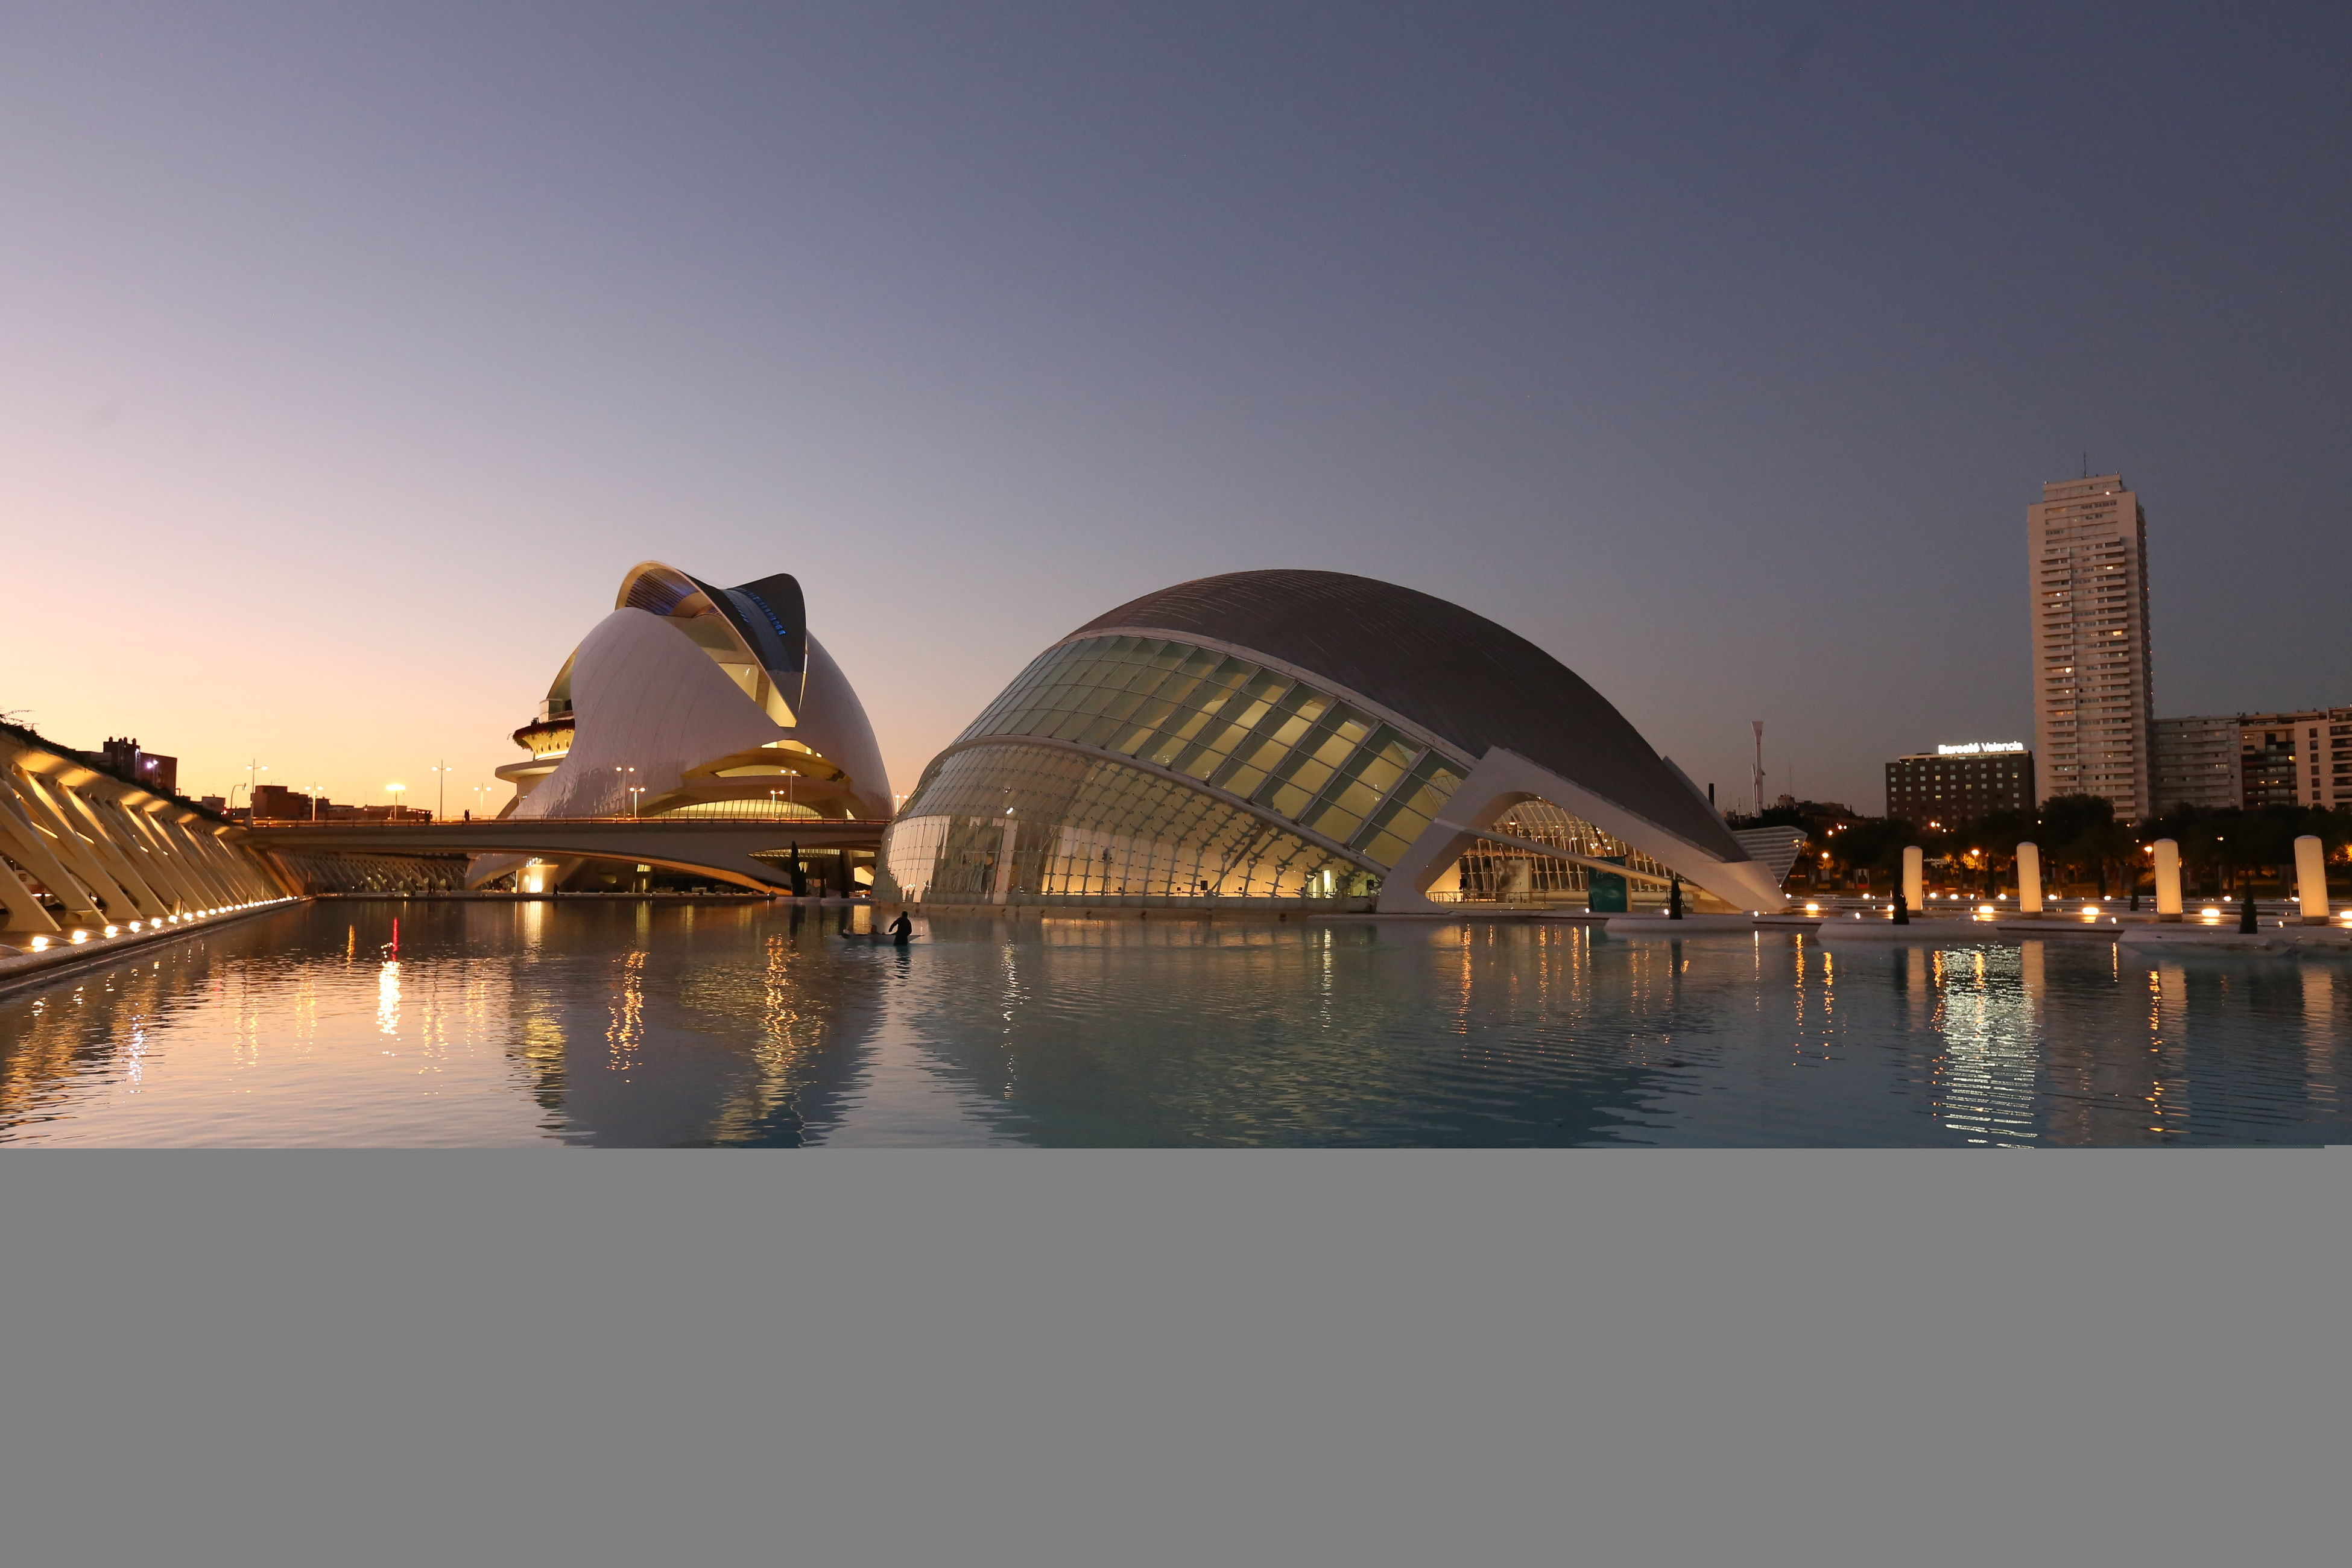 well last week in spain i grabed my camera and went out to shoot .. love the nite #Valencia#pies Architecture Blue Hour Europe Modern Spacy Sunset Water Reflections